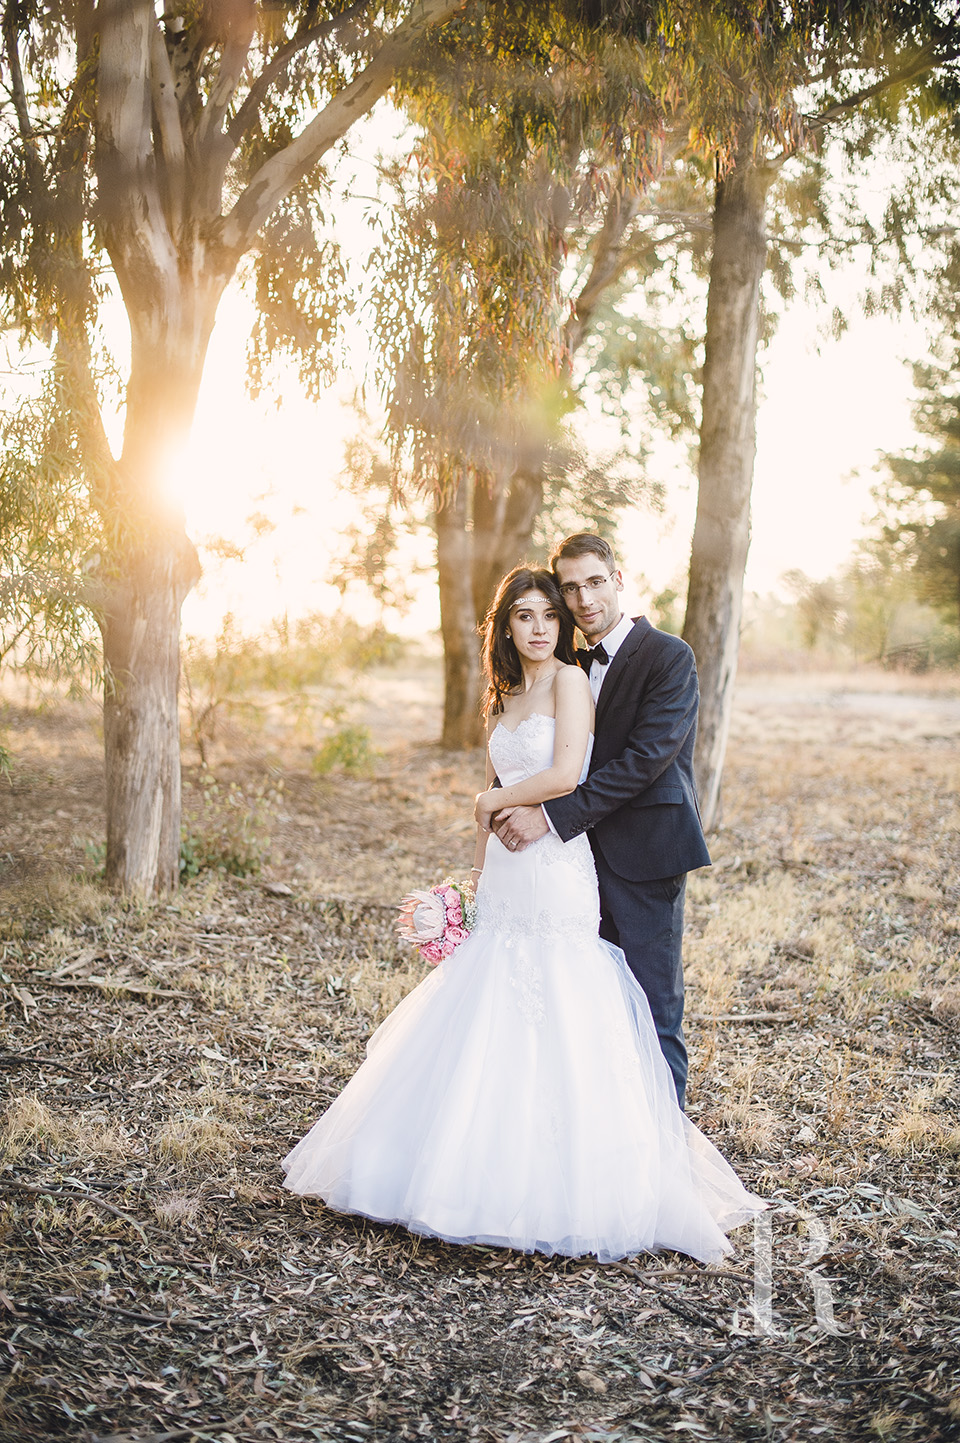 RYAN PARKER PHOTOGRAPHY_WEDDINGS_PRETORIA_ROSEMARY HILL_M&N DSC_0432.jpg